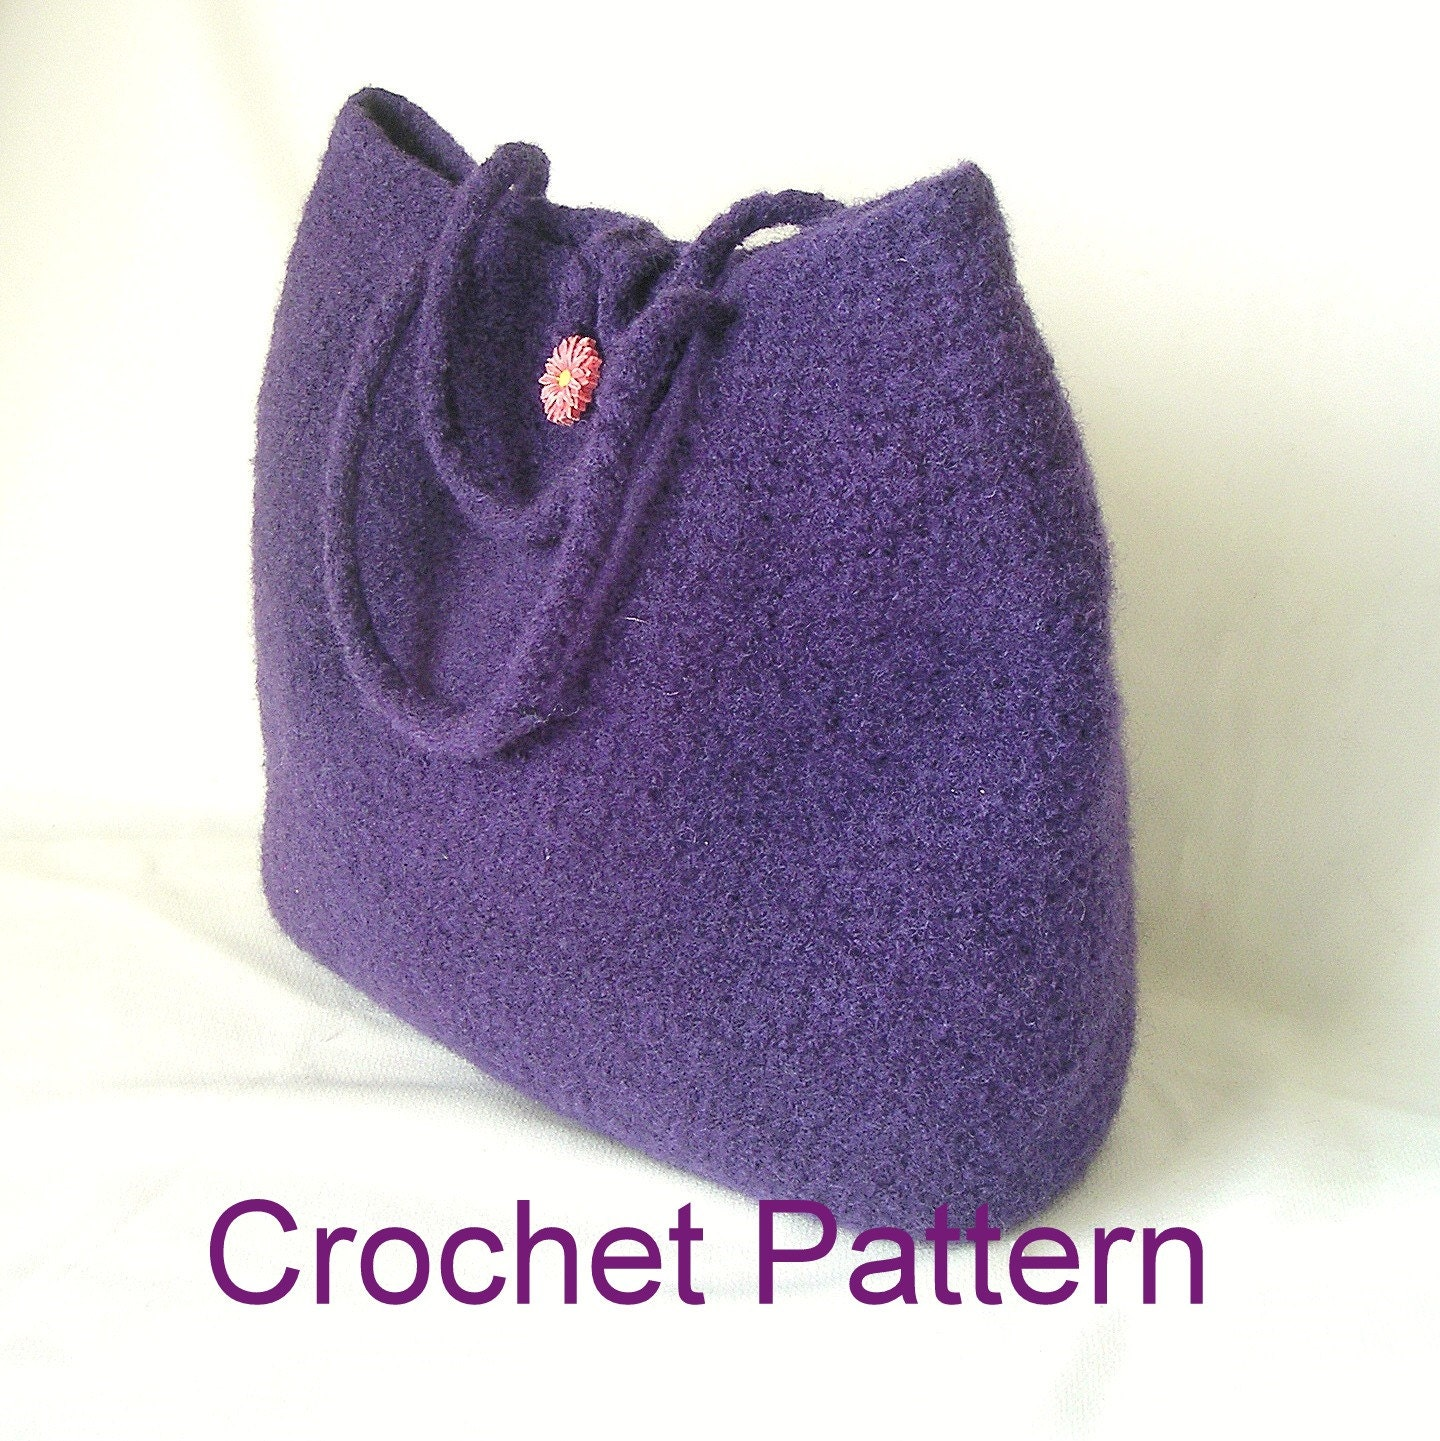 Felted Bag Crochet Bag Pattern Tutorial pdf Crochet by GraceG2